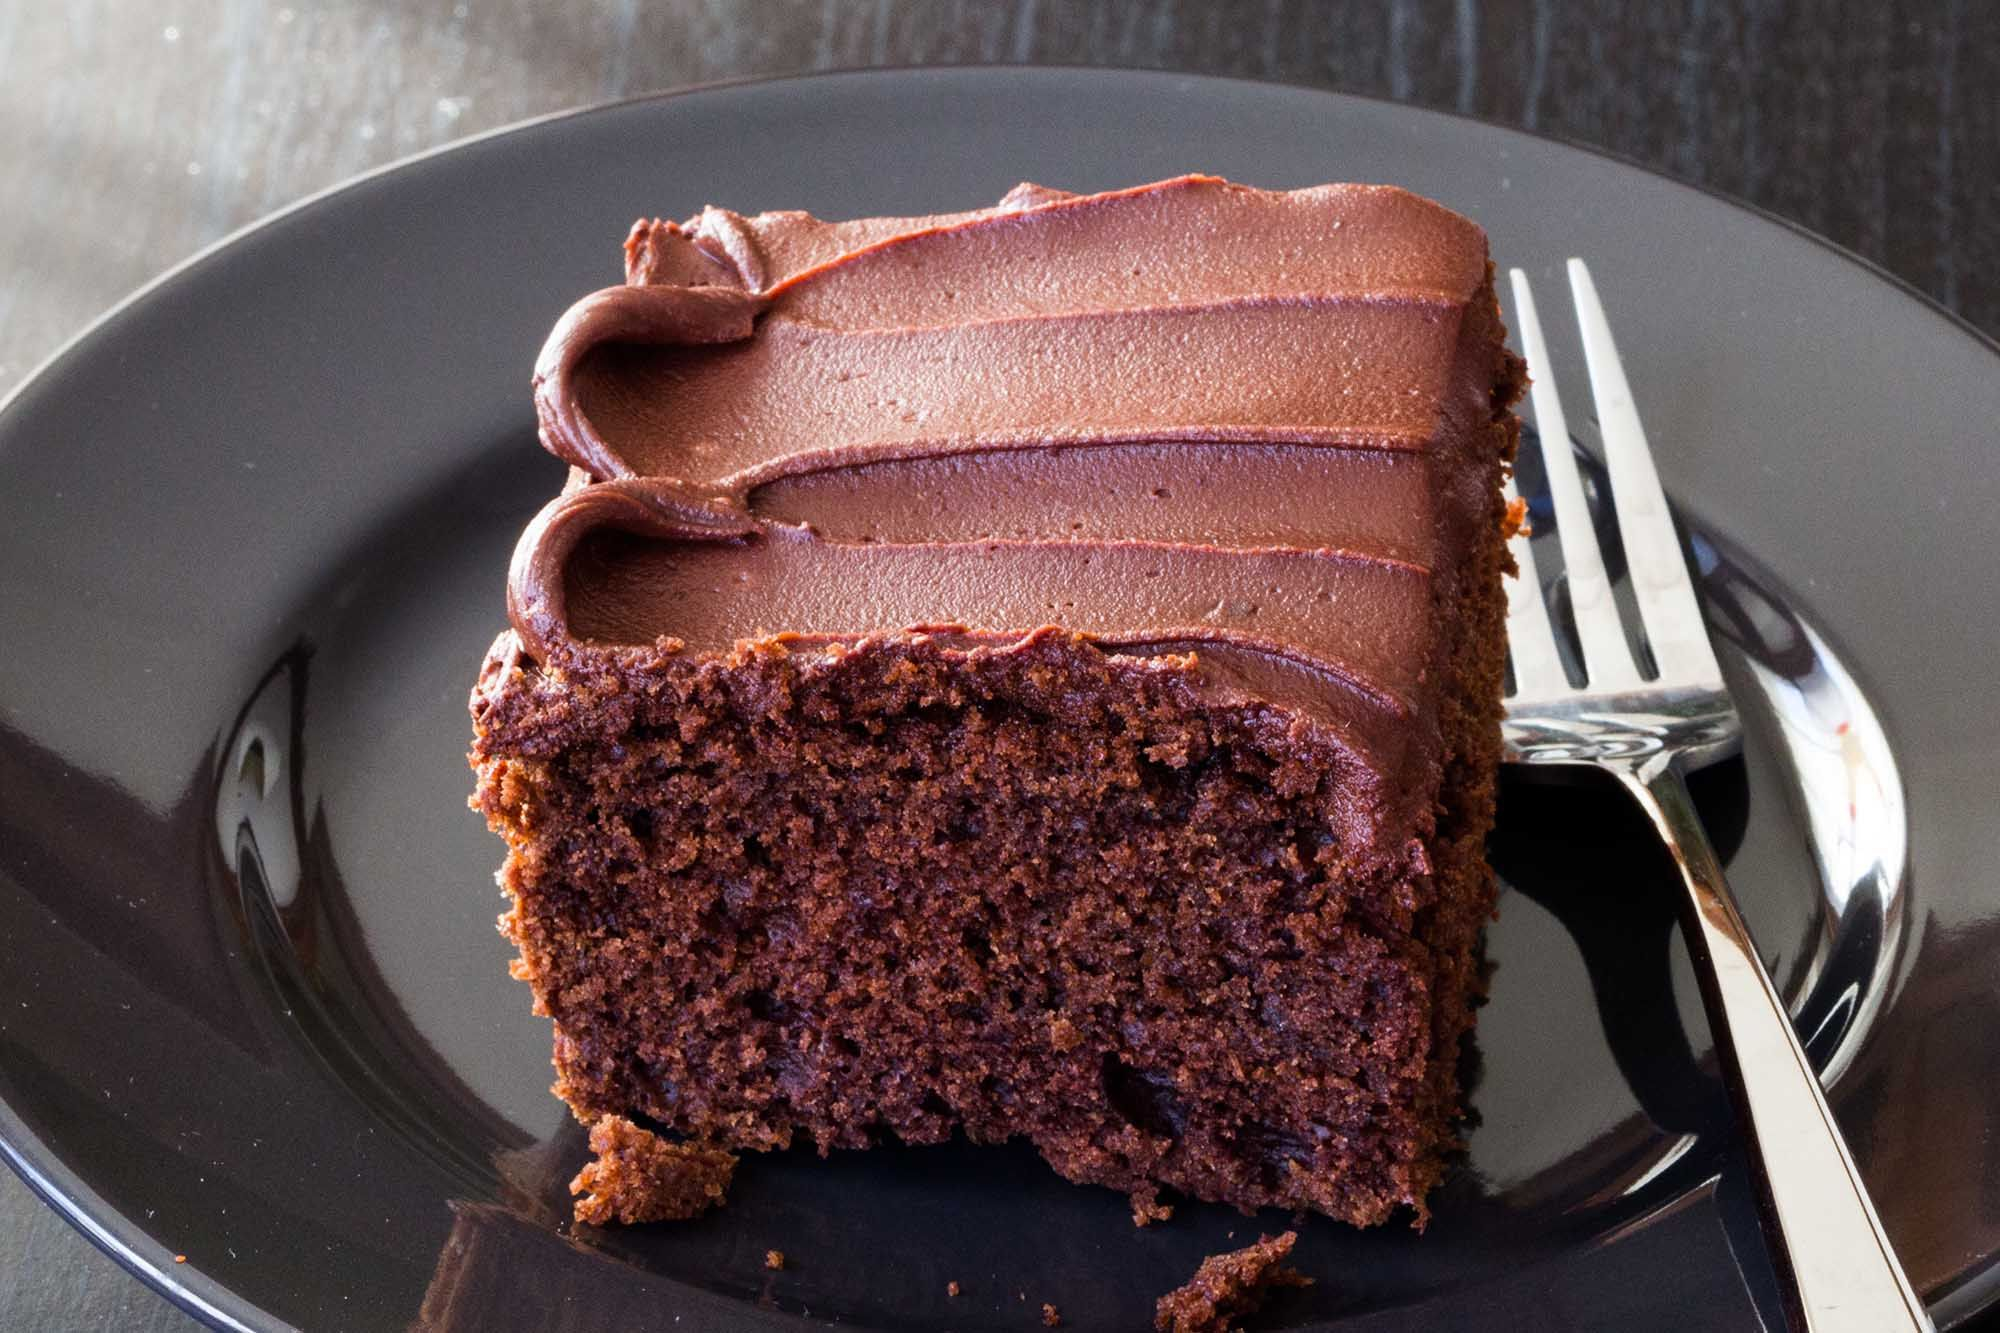 Sour Cream Chocolate Cake Recipe Sour Cream Chocolate Cake Sour Cream Cake Chocolate Frosting Recipes